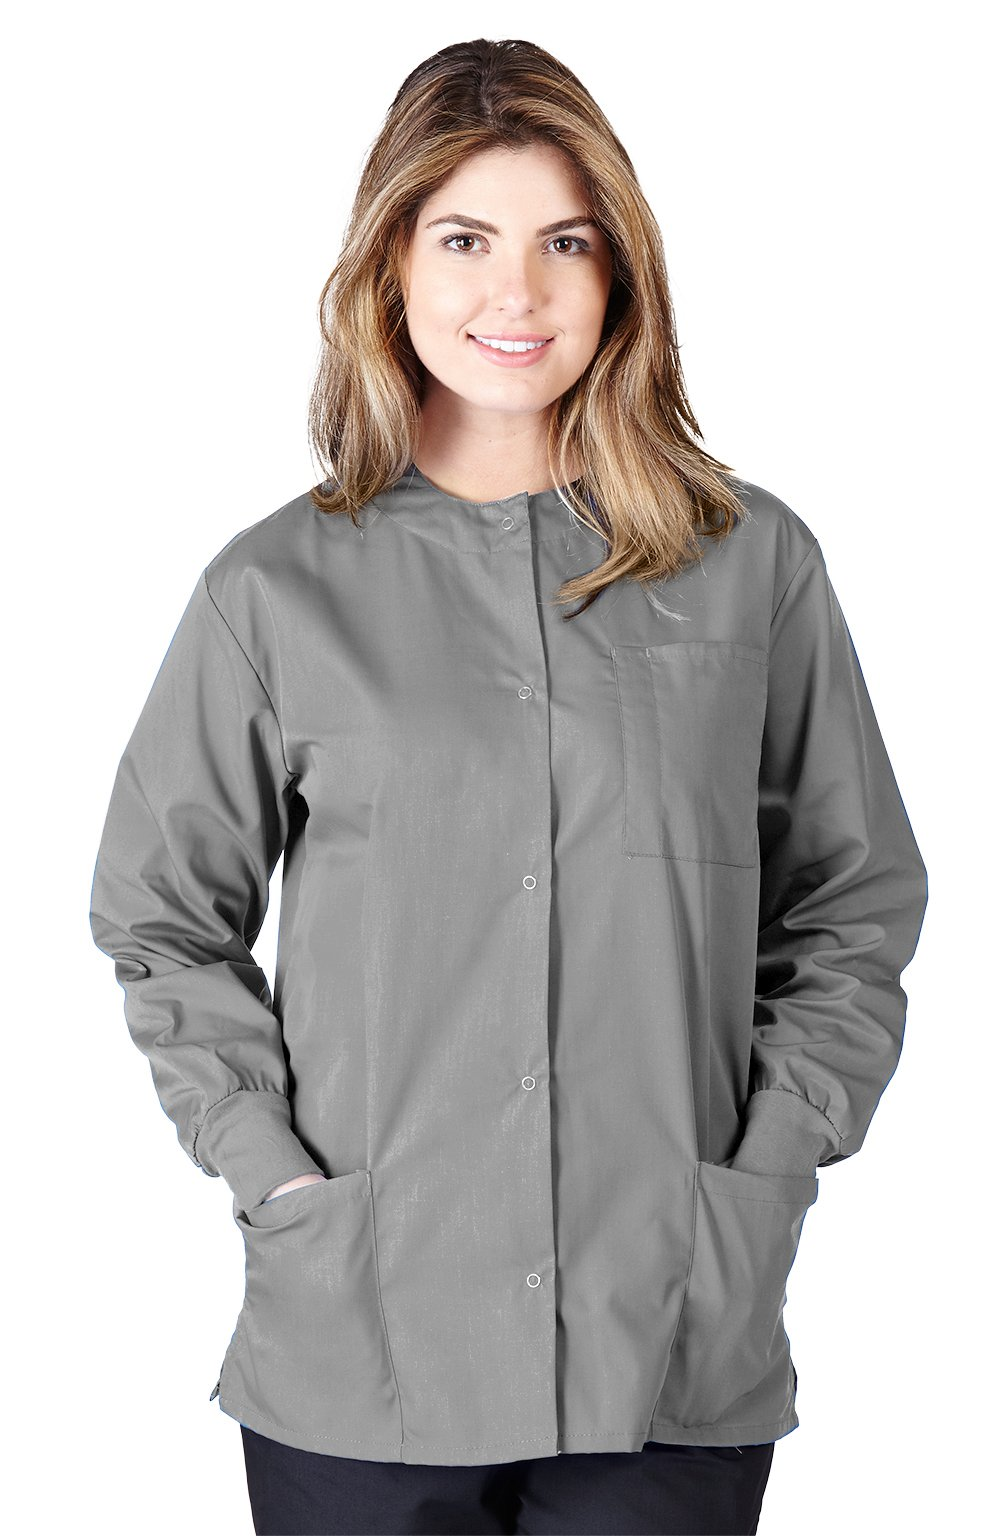 Natural Uniforms Women's Warm Up Jacket (Plus Sizes Available) (Small, Grey)